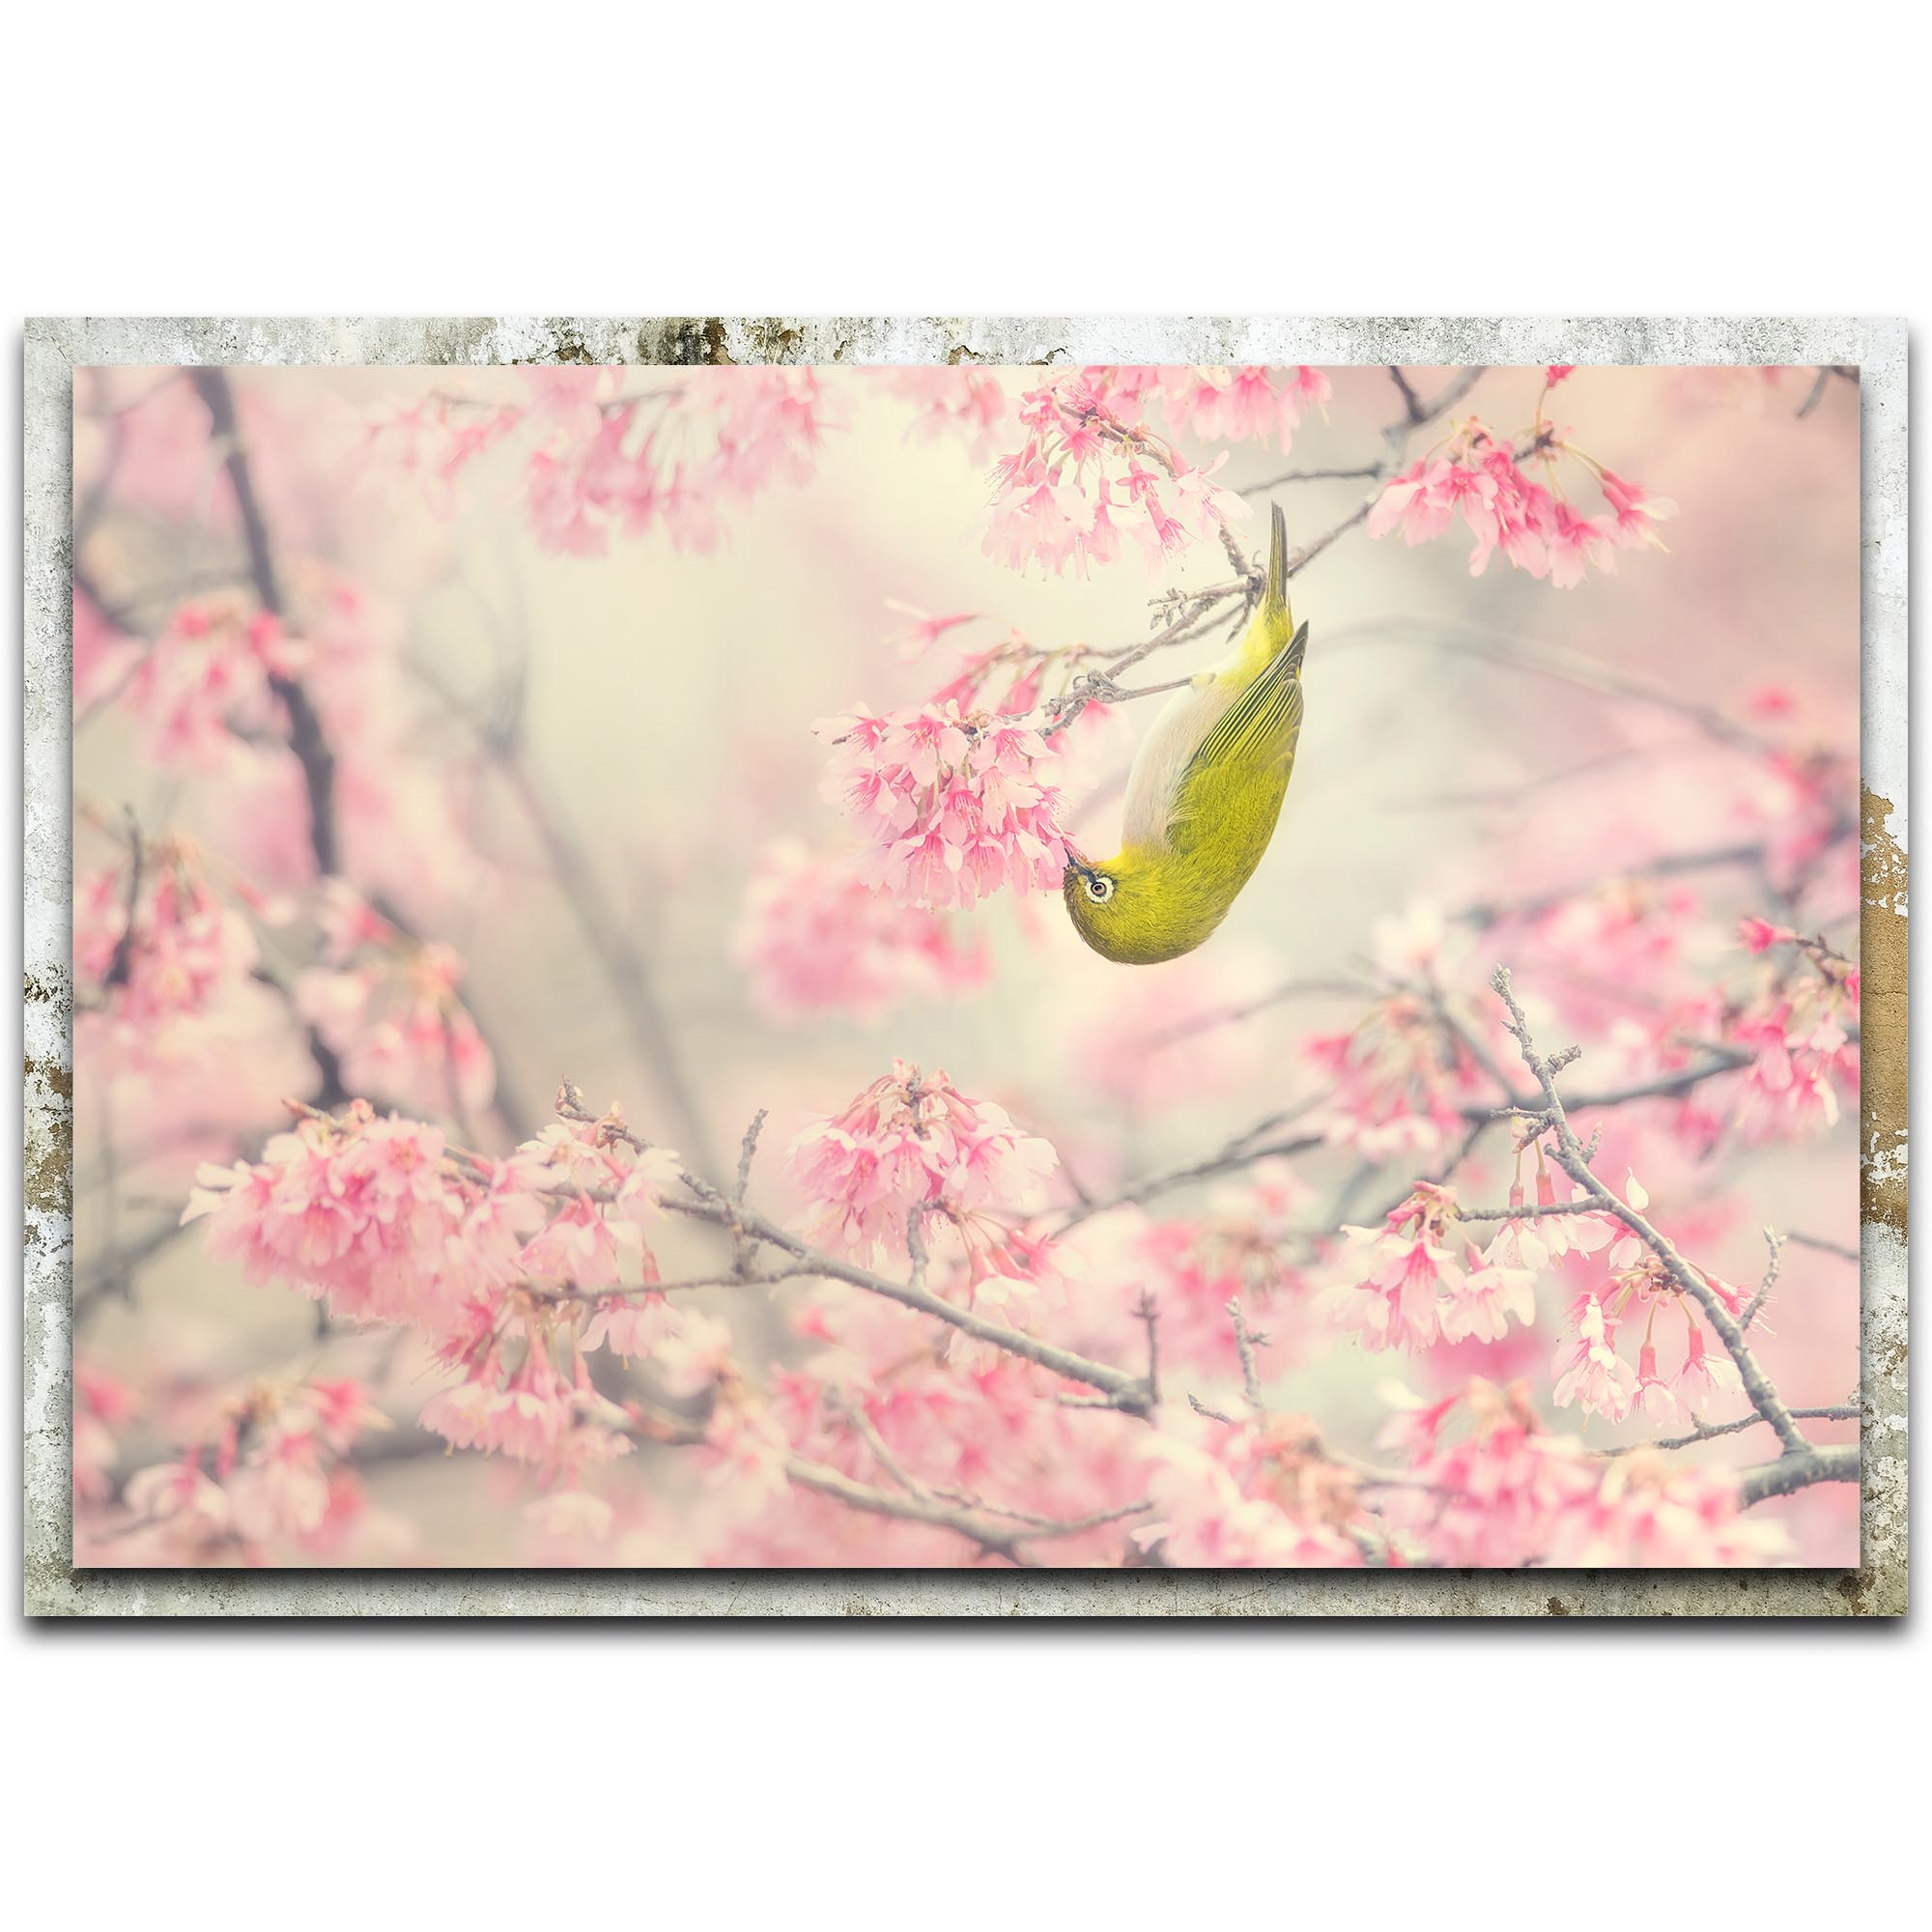 Takashi Suzuki 'Cherry Blossom Color' 32in x 22in Modern Farmhouse Floral on Metal